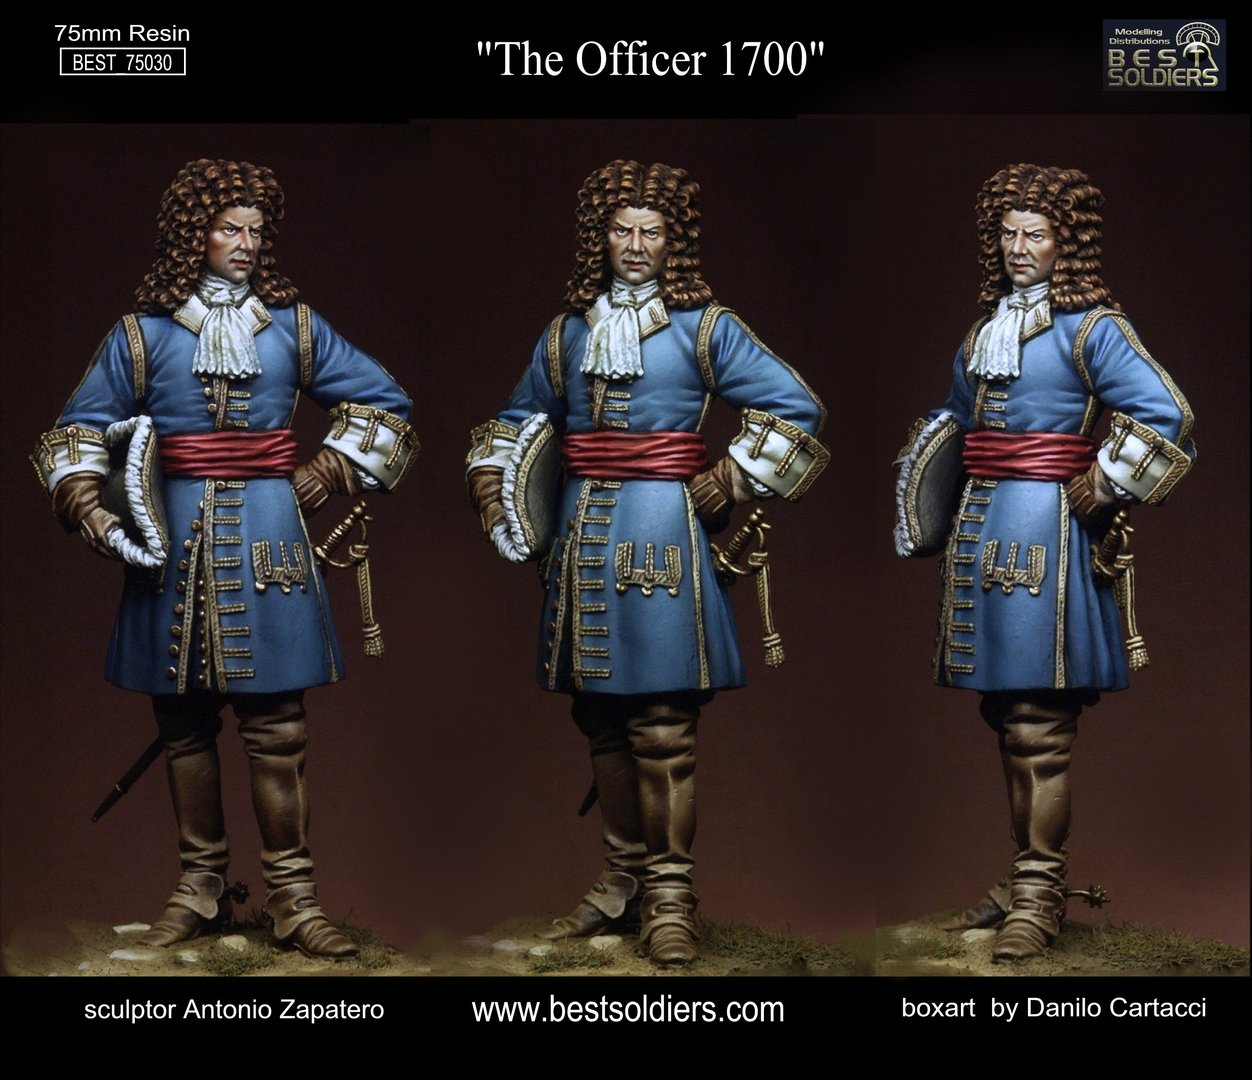 The Officer 1700